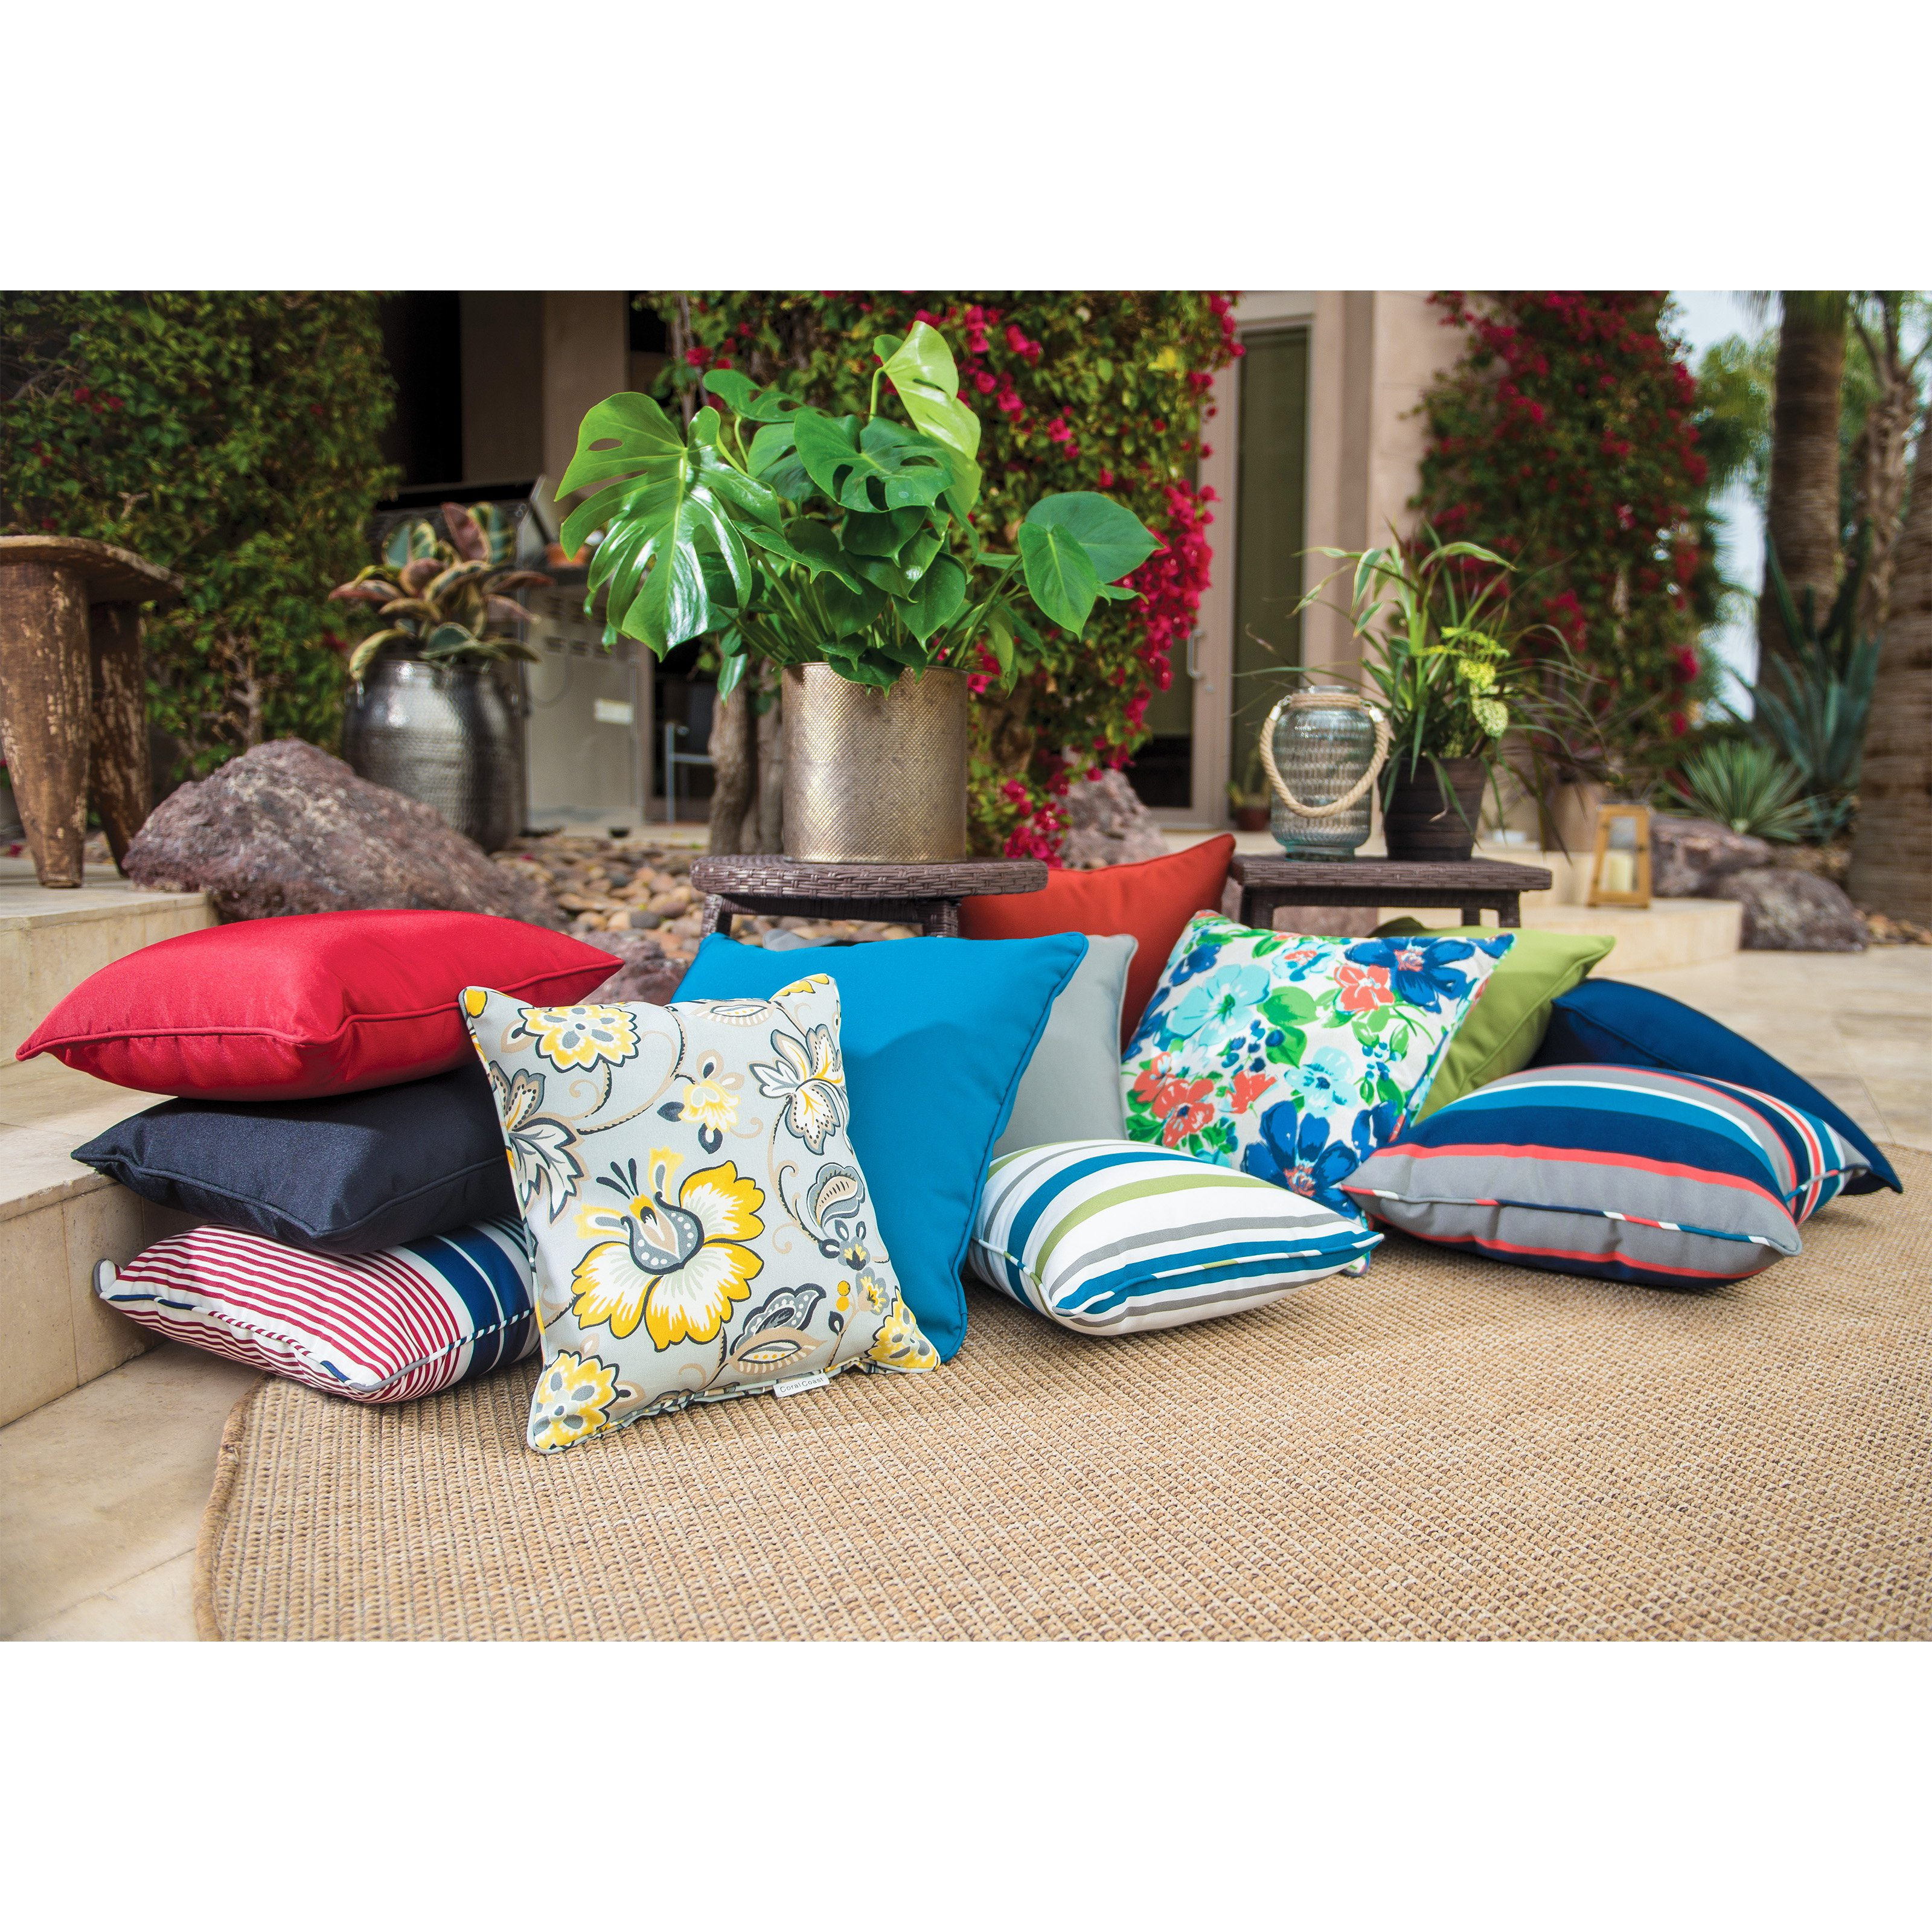 Coral Coast Classic 14 x 16 in. Outdoor Toss Pillow - Set of 2